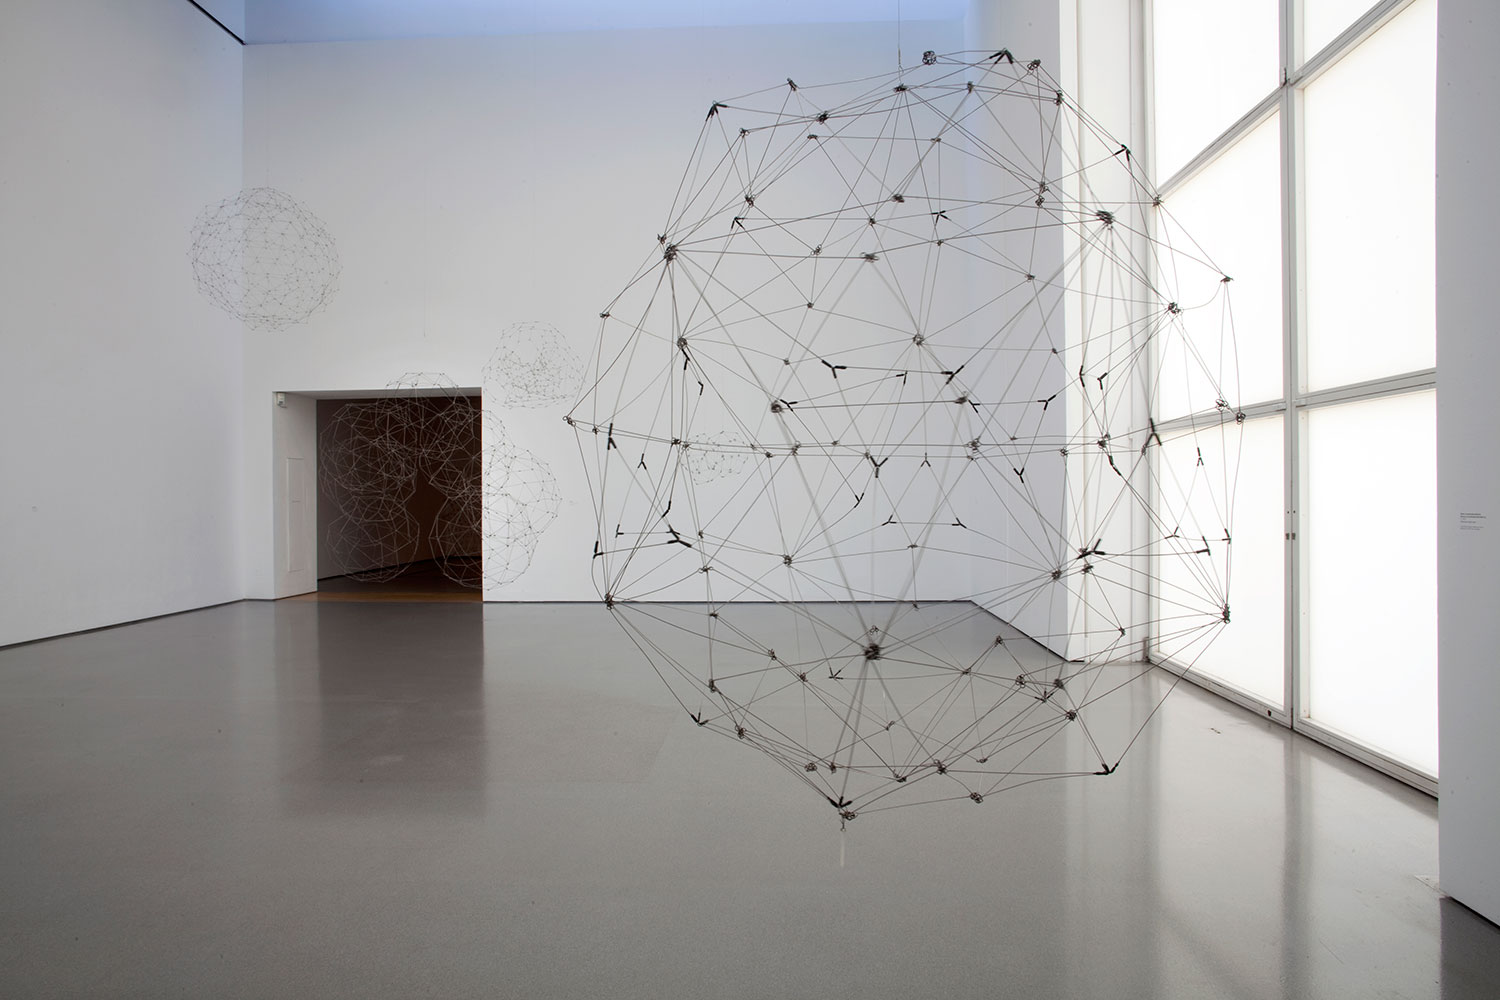 Installation view of Gallery 2, showing (foreground): Gego, 'Esfera N° 5' ('Sphere No. 5') (1977, steel wire with metal clasps)